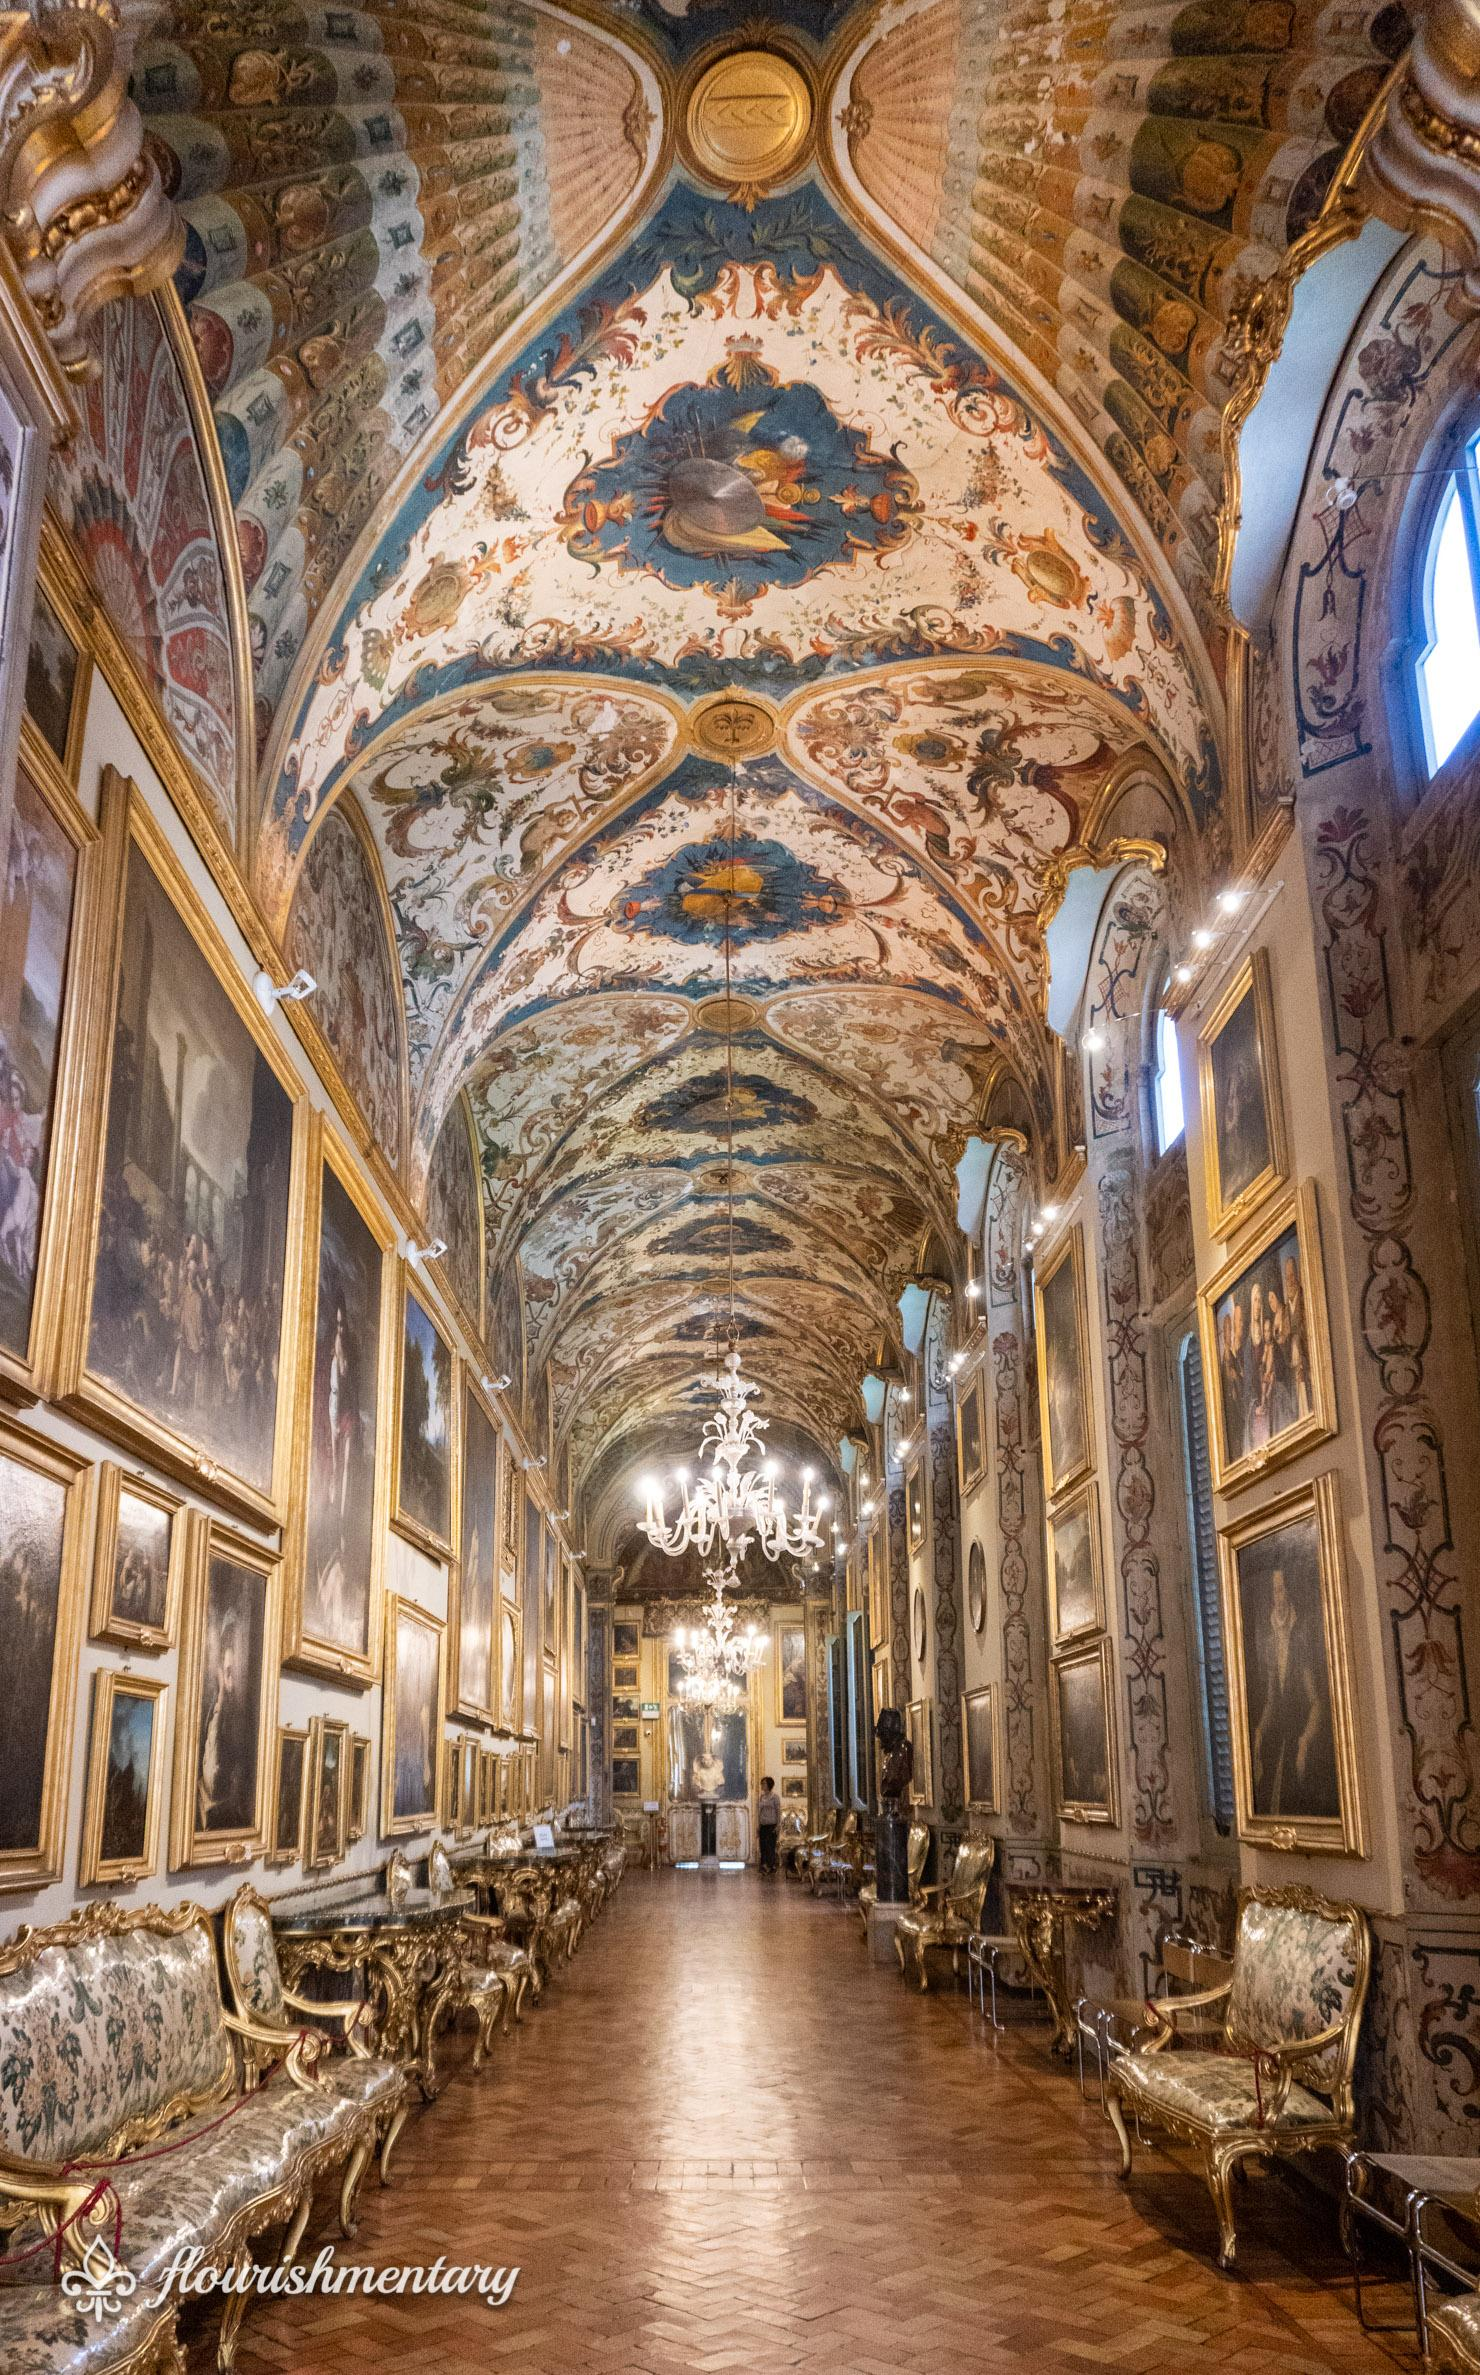 Galleria Doria Pamphilj fresco and art wing